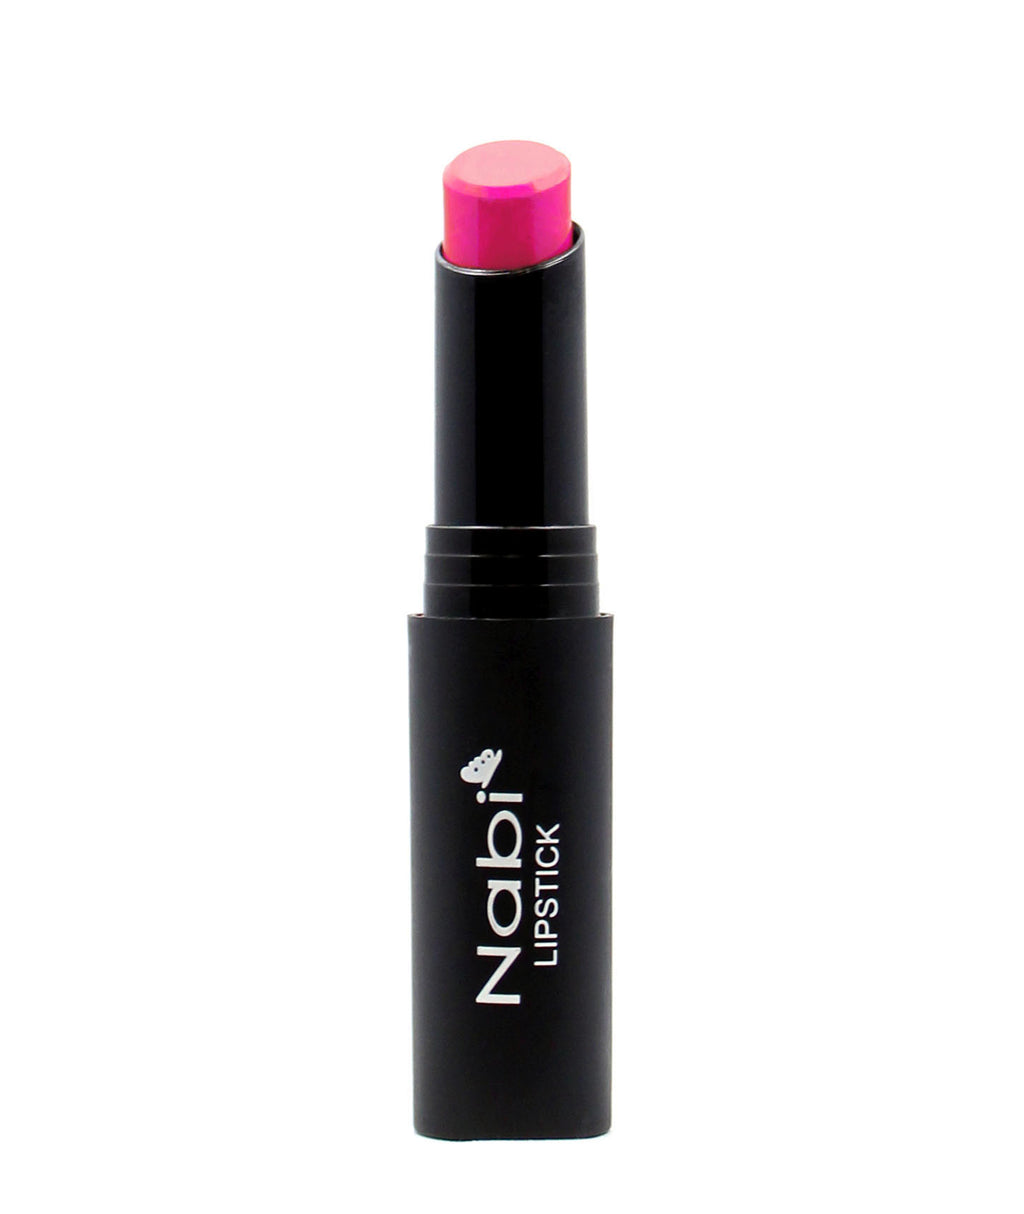 NLS63 - Regular Lipstick Rose Rose